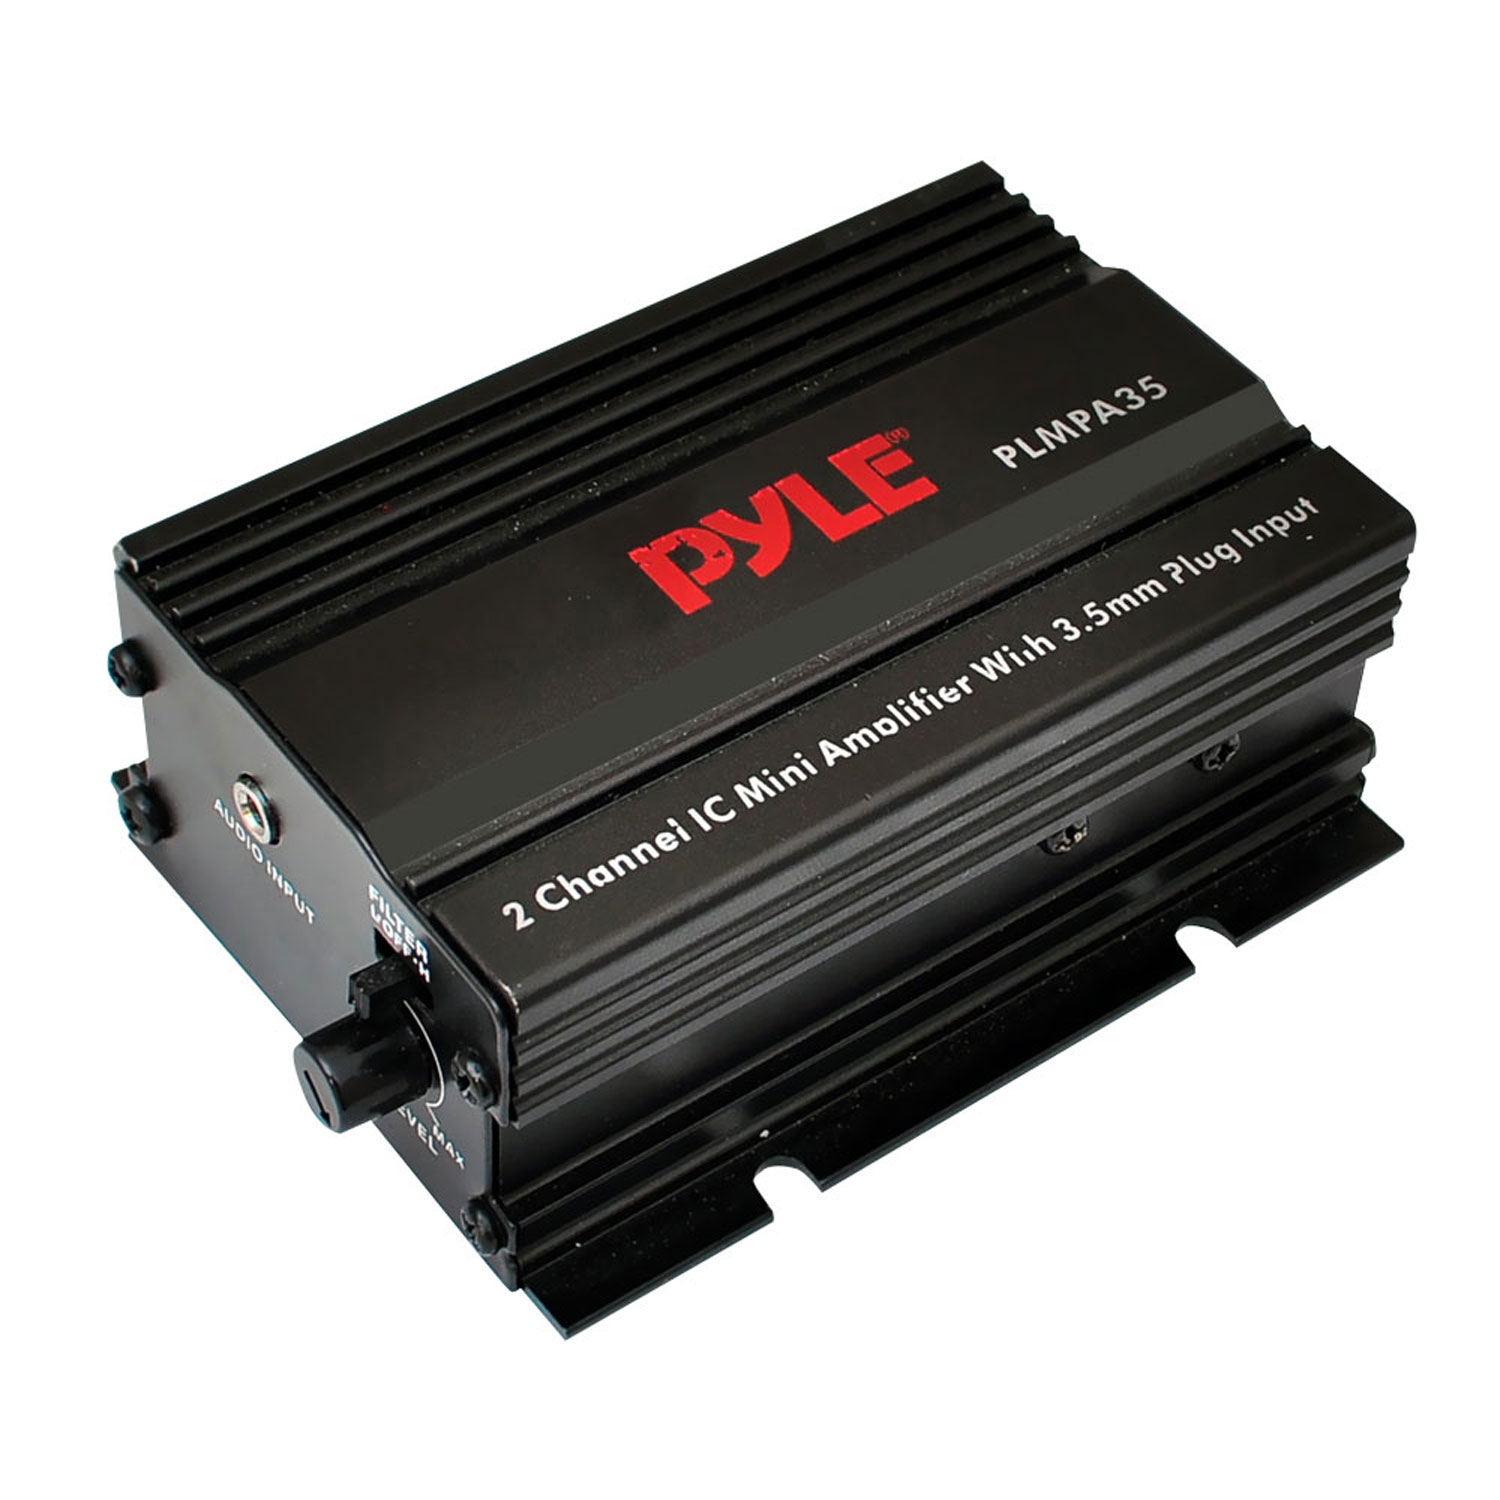 Pyle 2 Channel 300 Watt Mini Amplifier w/3.5mm Input